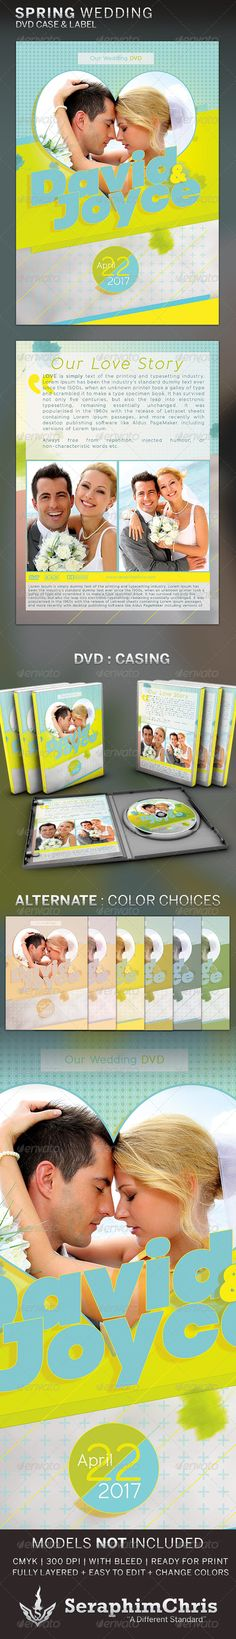 This Spring Wedding: DVD Template is customized for Weddings that needs a crisp colorful and bright presentation to represent the special occasion. Colors can be easily changed to match ones specificity. This premium design is constructed to give the highest dynamic quality when printed or posted to social media sites and other formats. This file is exclusive to graphicriver.net